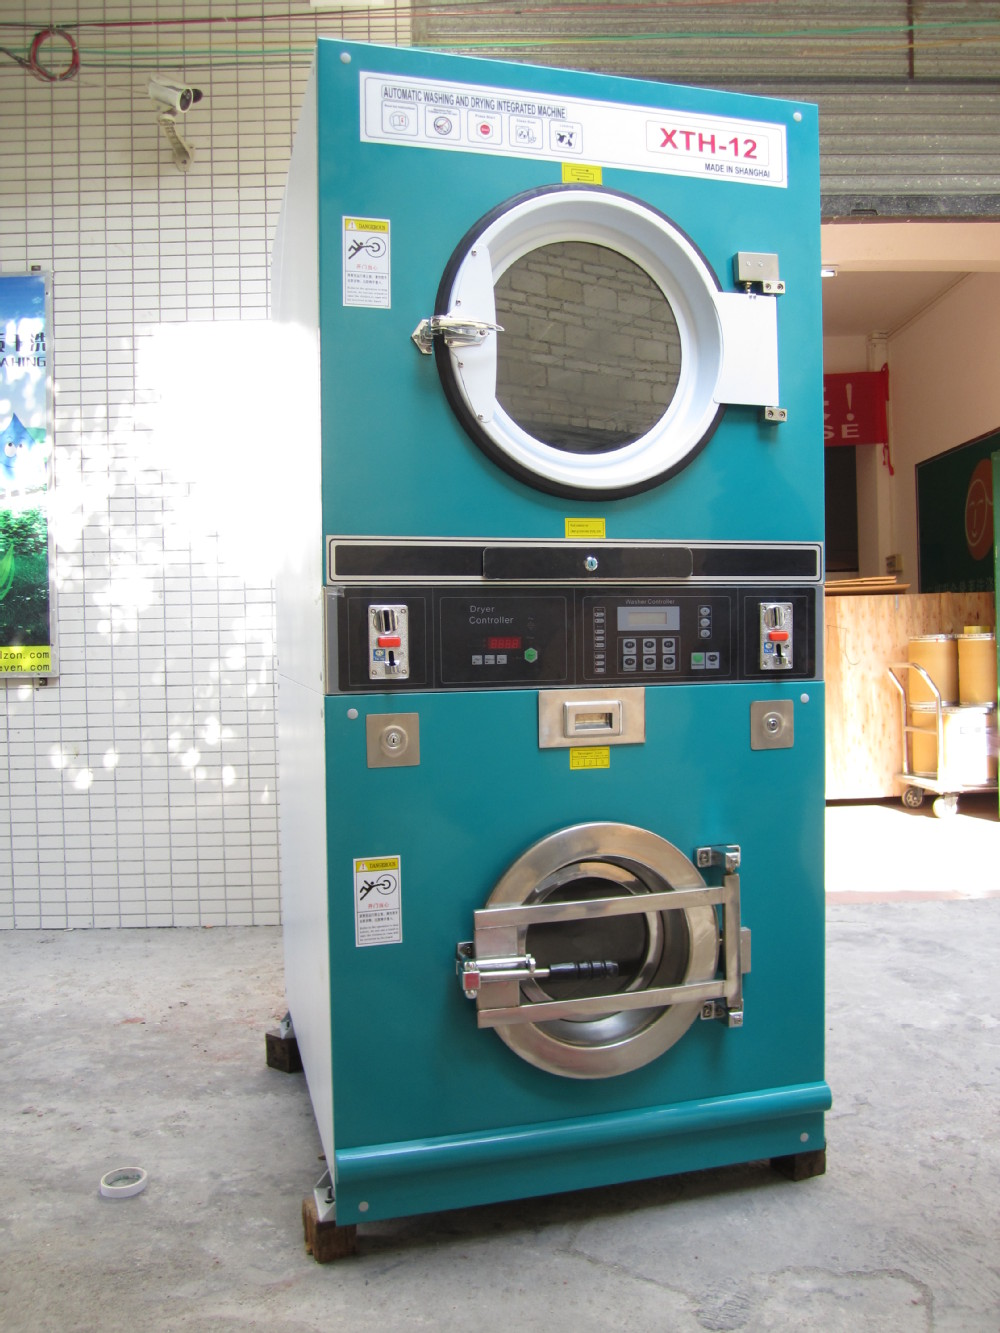 laundry machine coin operated